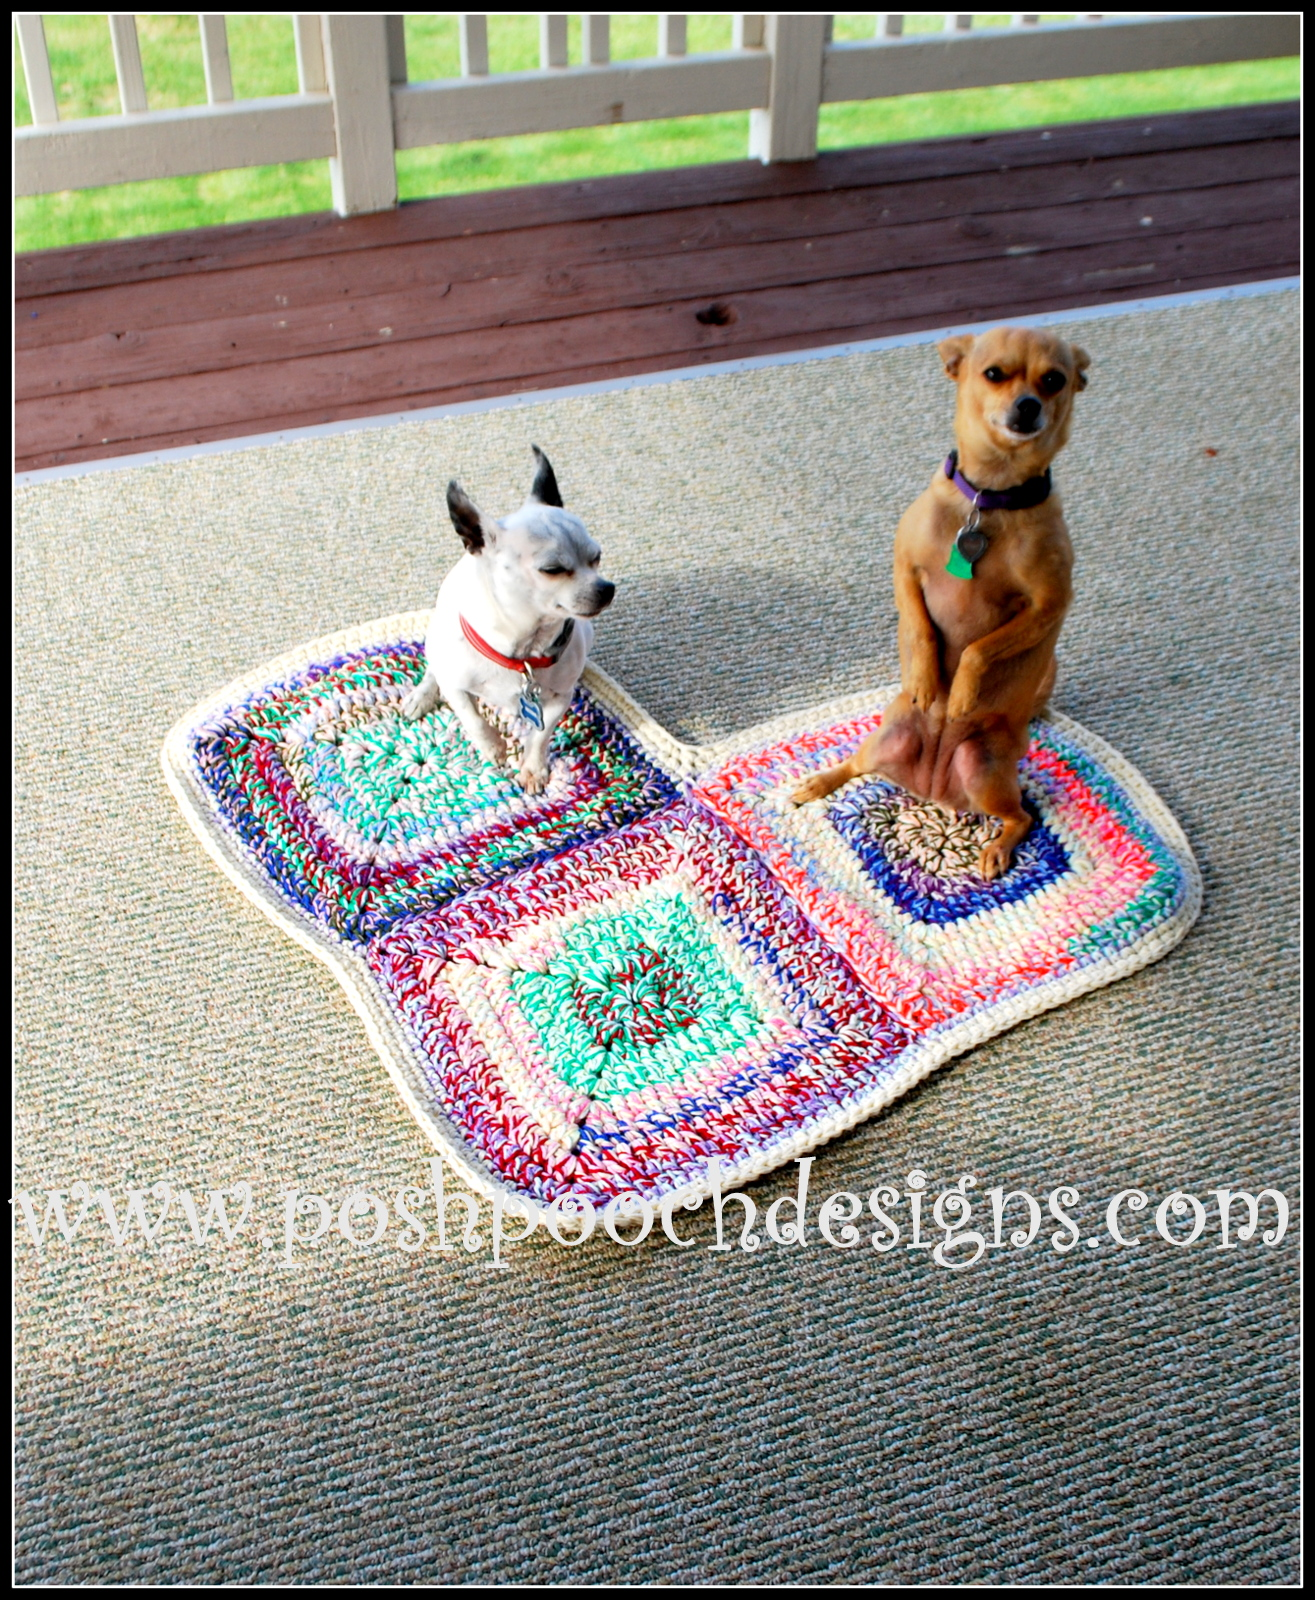 Posh Pooch Designs Dog Clothes Heart Shaped Dog Rug Free Crochet